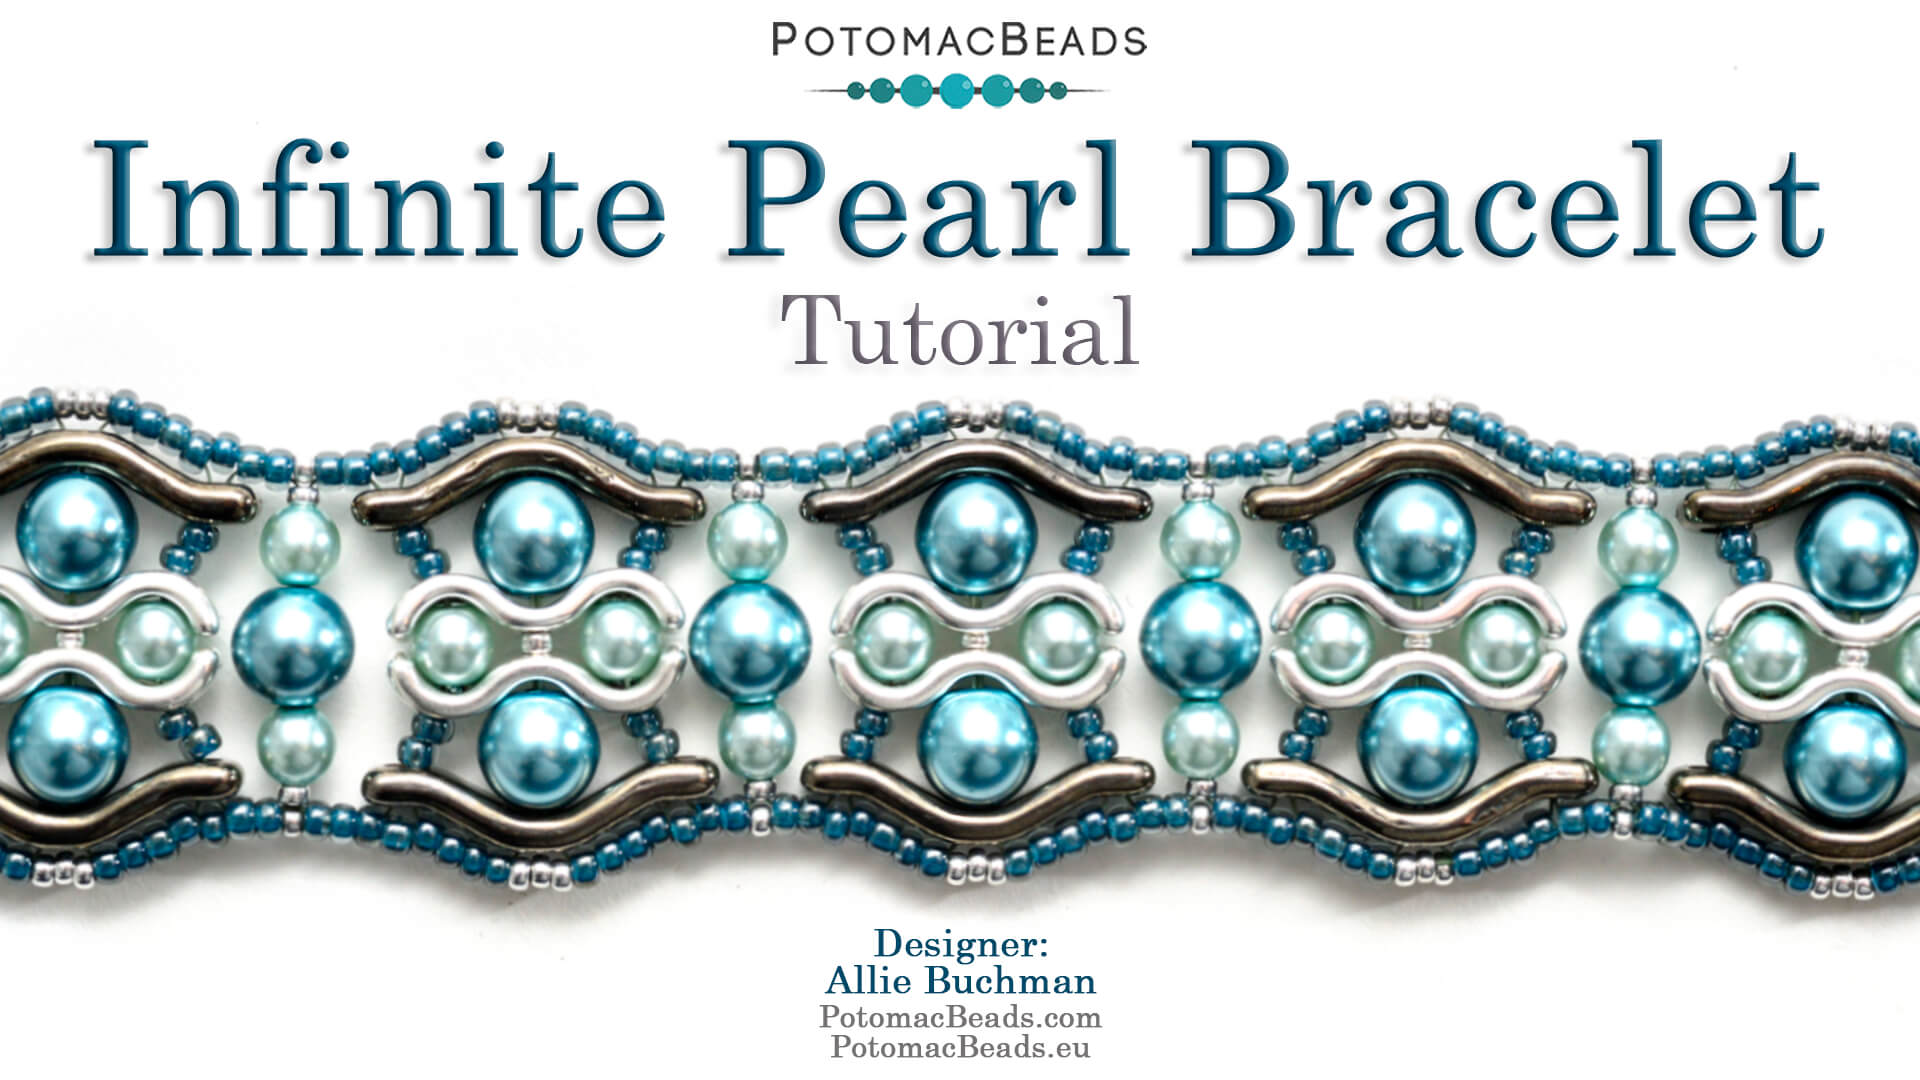 How to Bead Jewelry / Videos Sorted by Beads / Pearl Videos (Czech, Freshwater, Potomac Pearls) / Infinite Pearl Bracelet Tutorial